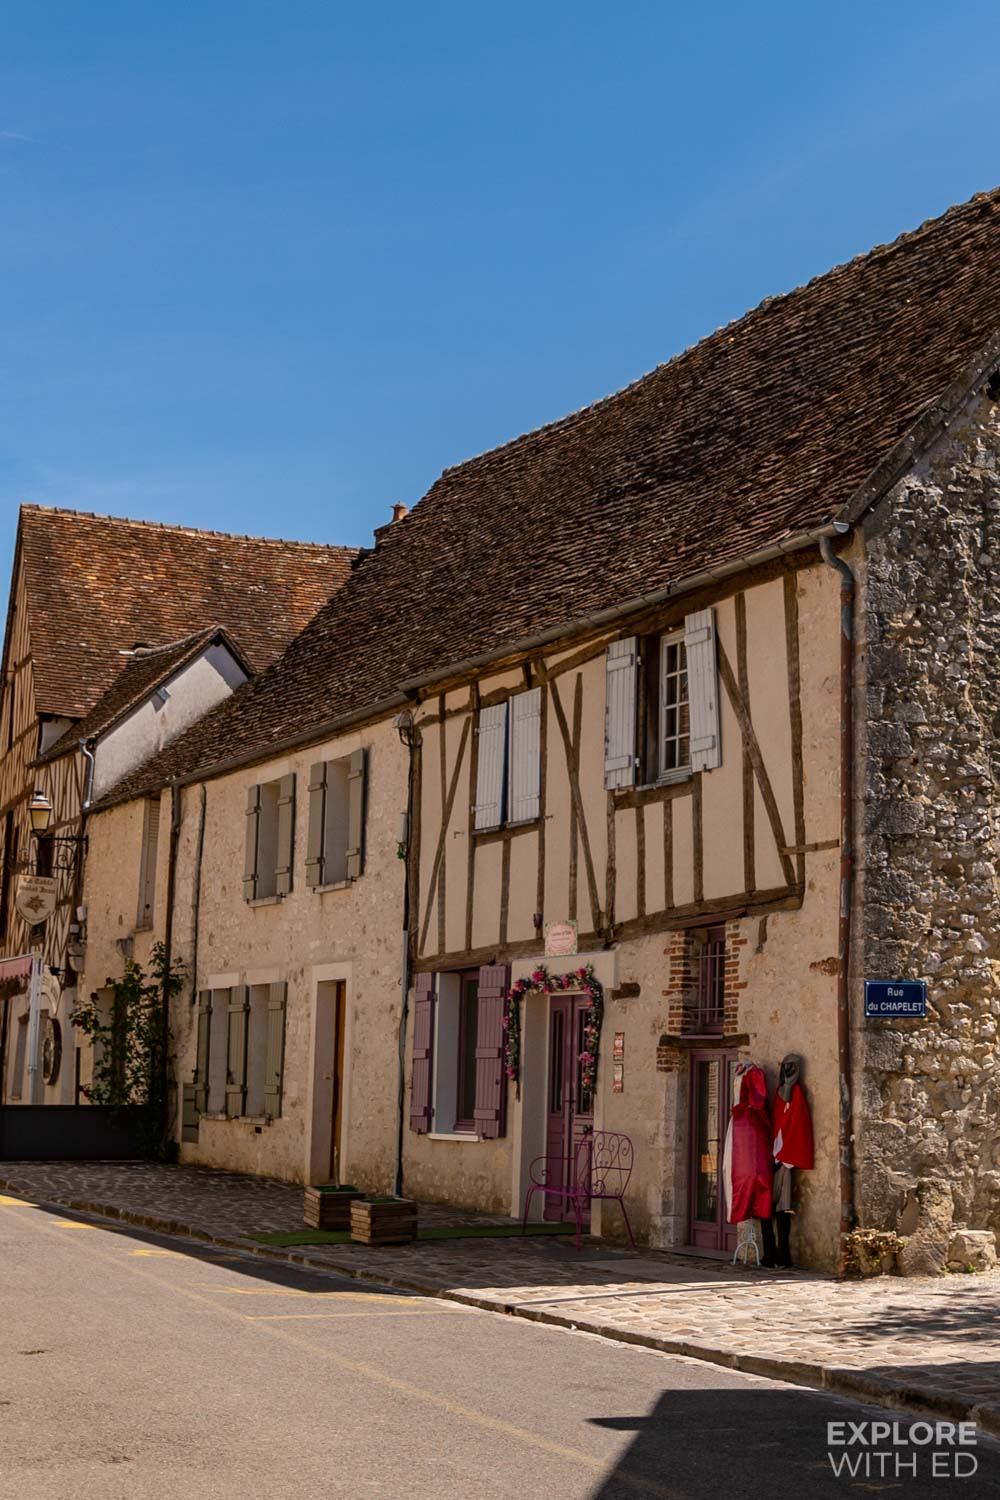 Charming row of shops in Provins